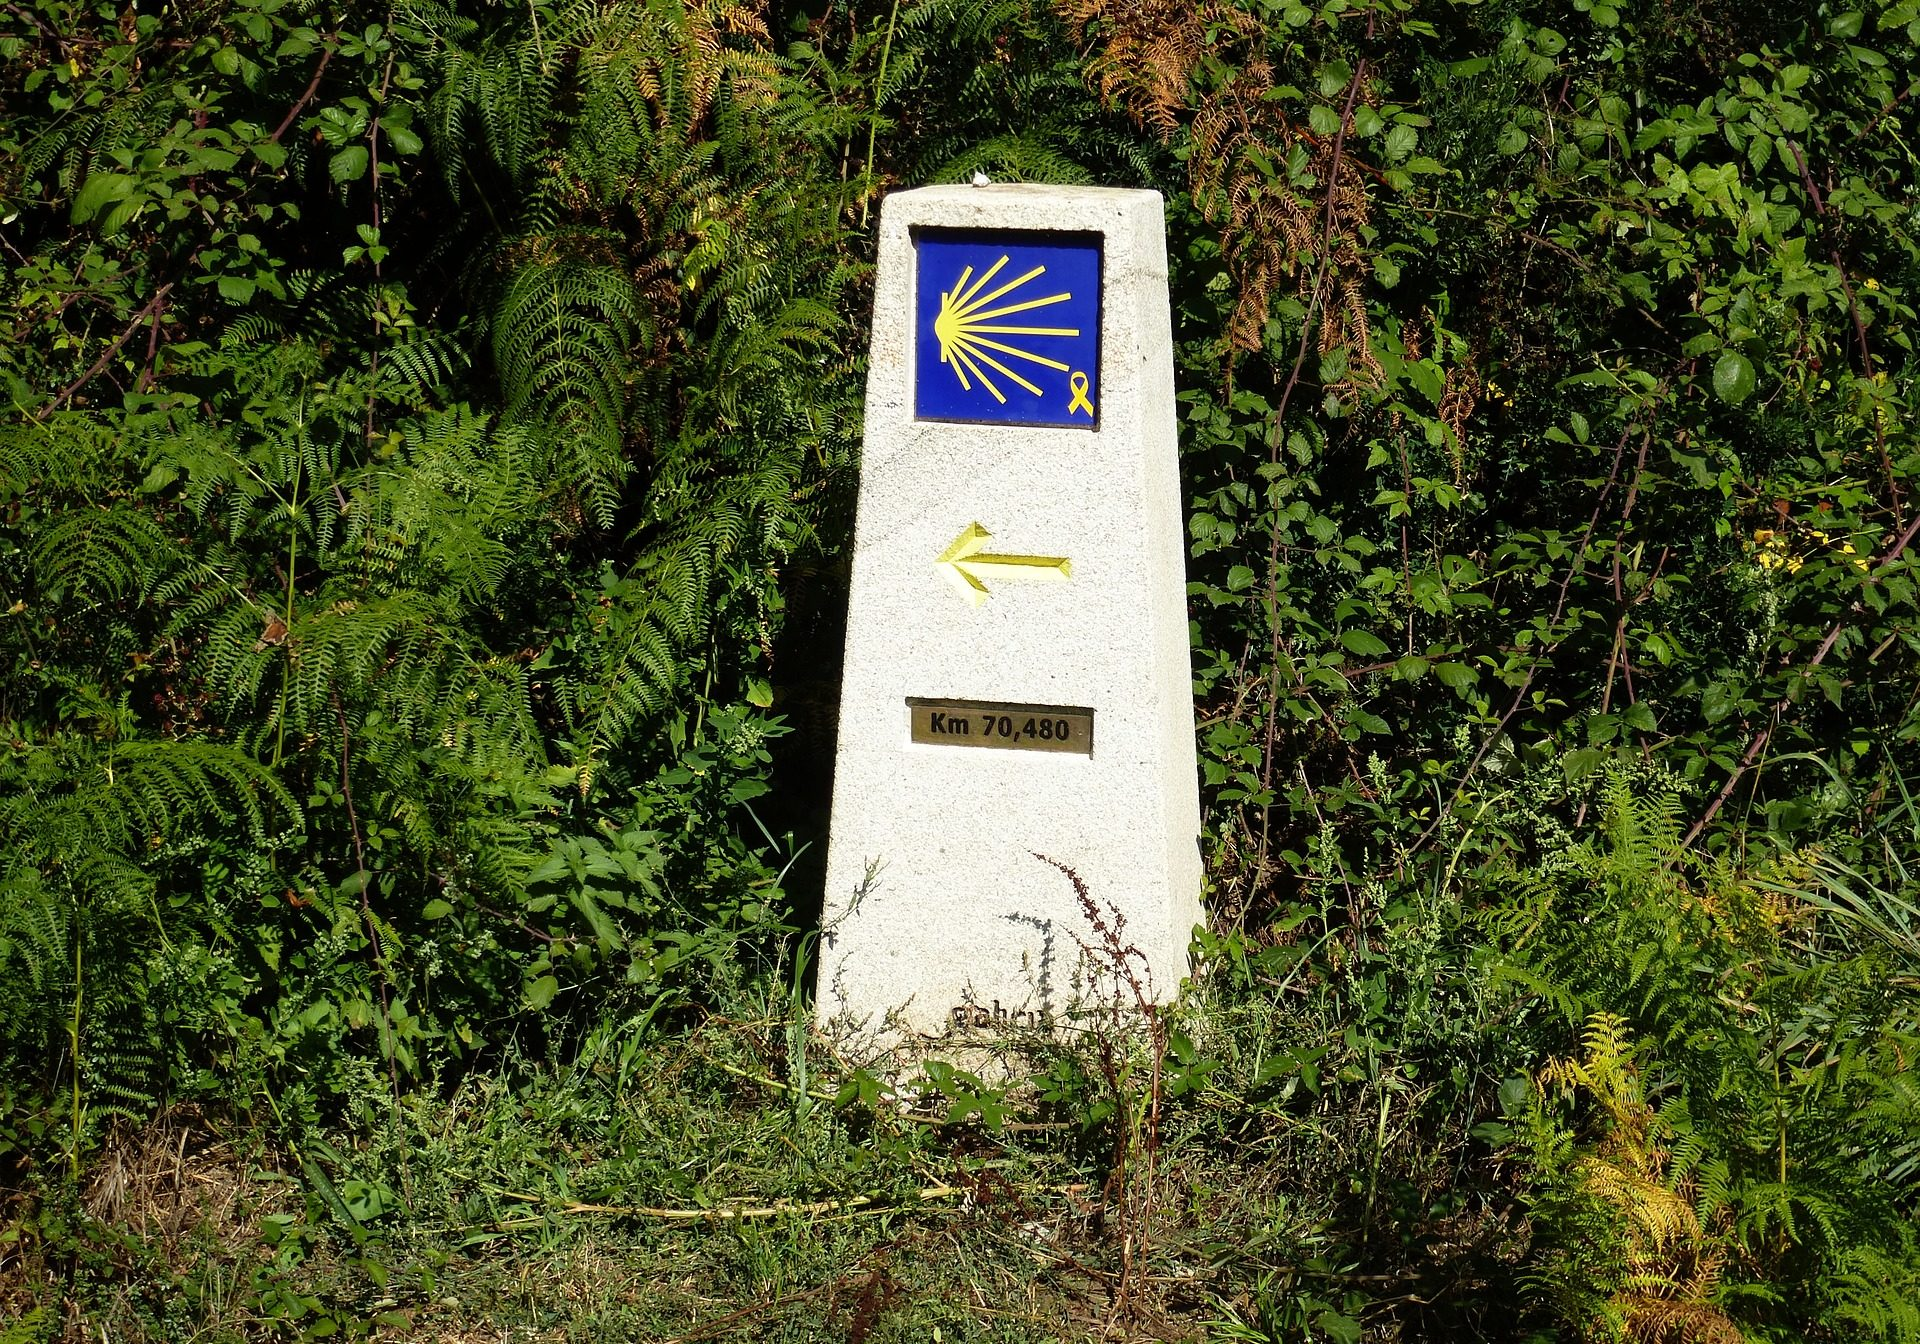 milemarker-way-of-st-james-1757859_1920